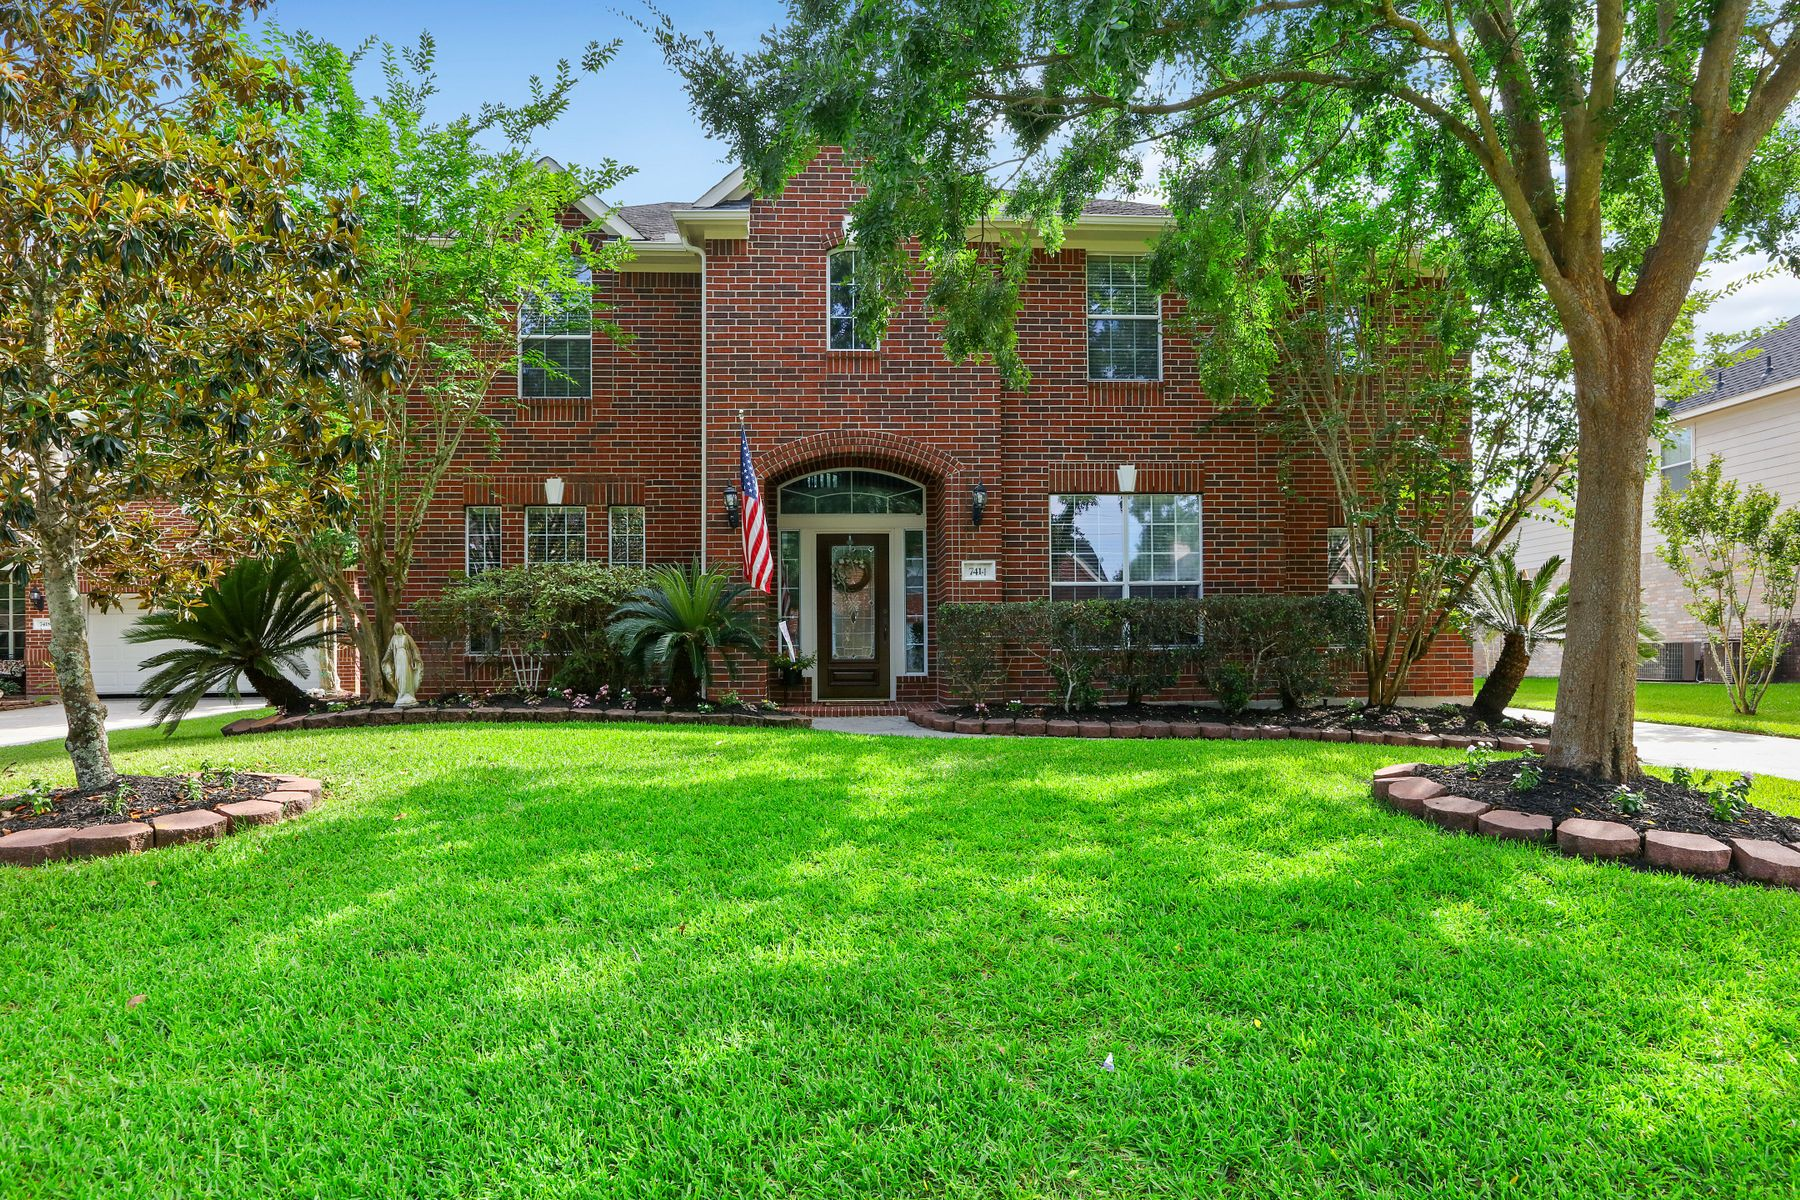 Single Family Homes for Sale at 7414 Passing Pine Court Kingwood, Texas 77346 United States